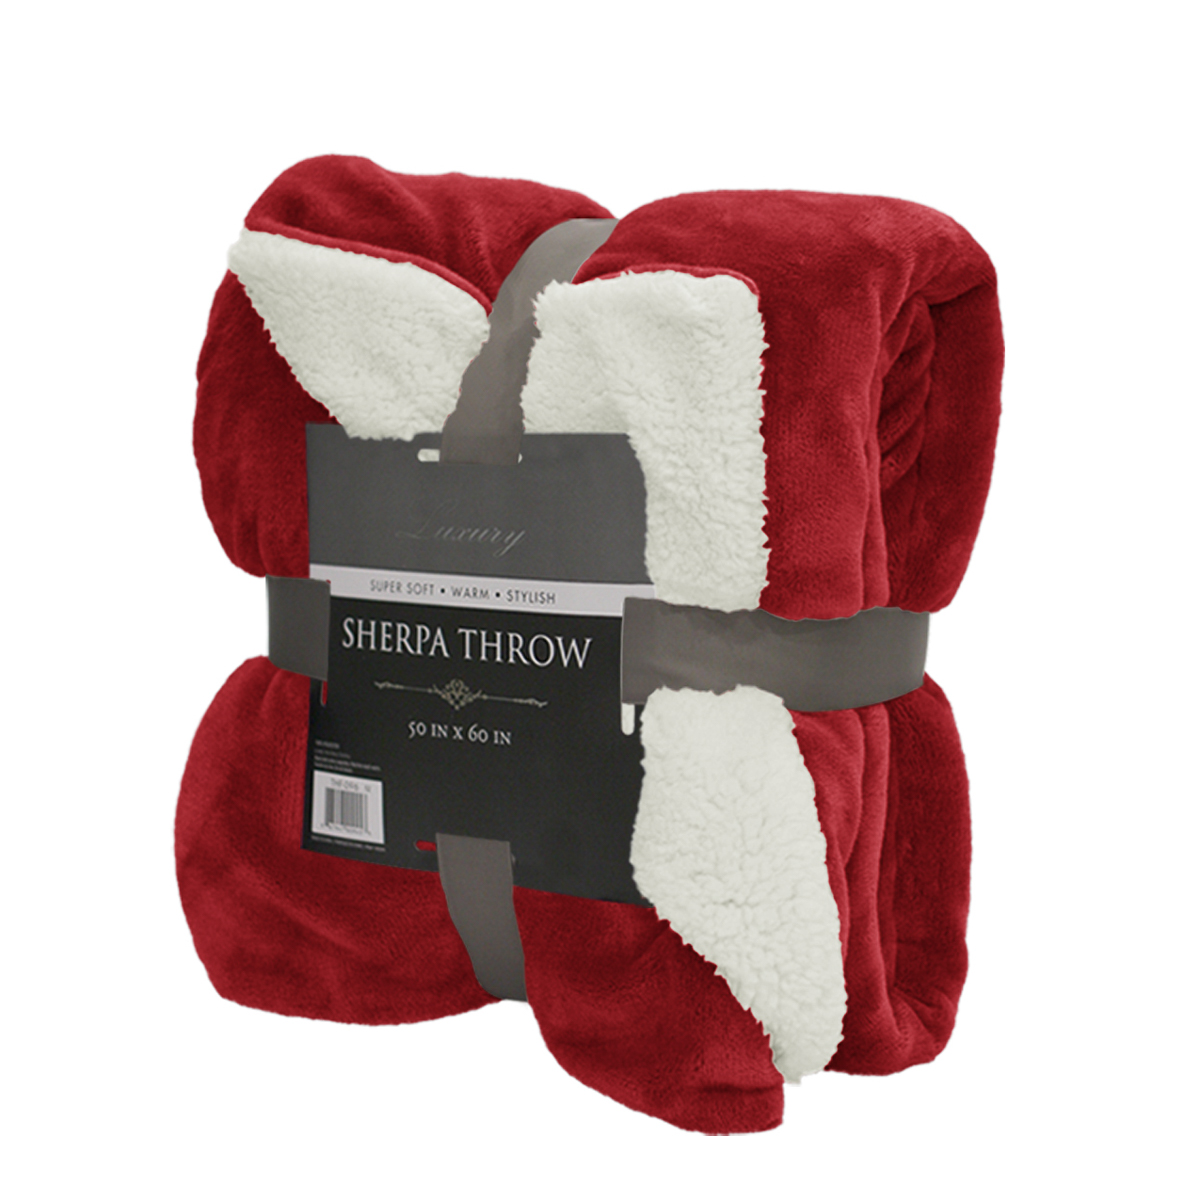 Reversible sherpa throw blanket 50 x 60 color warm soft for Soft blankets and throws